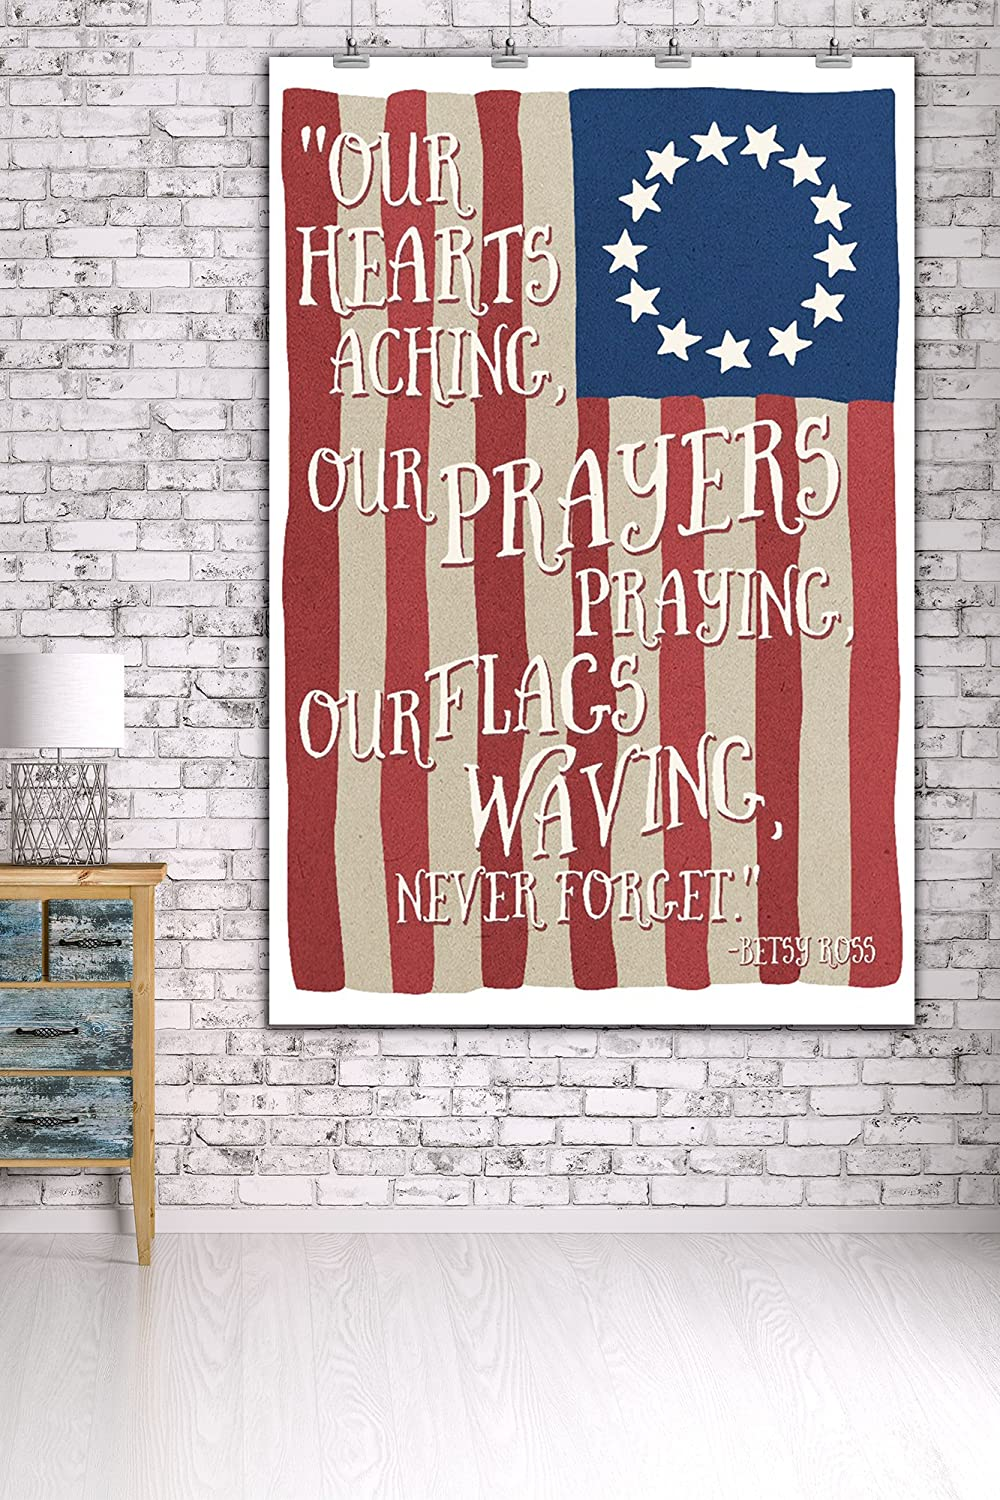 Betsy Ross Flag Never Forget Quote 36x54 Giclee Gallery Print, Wall Decor Travel Poster